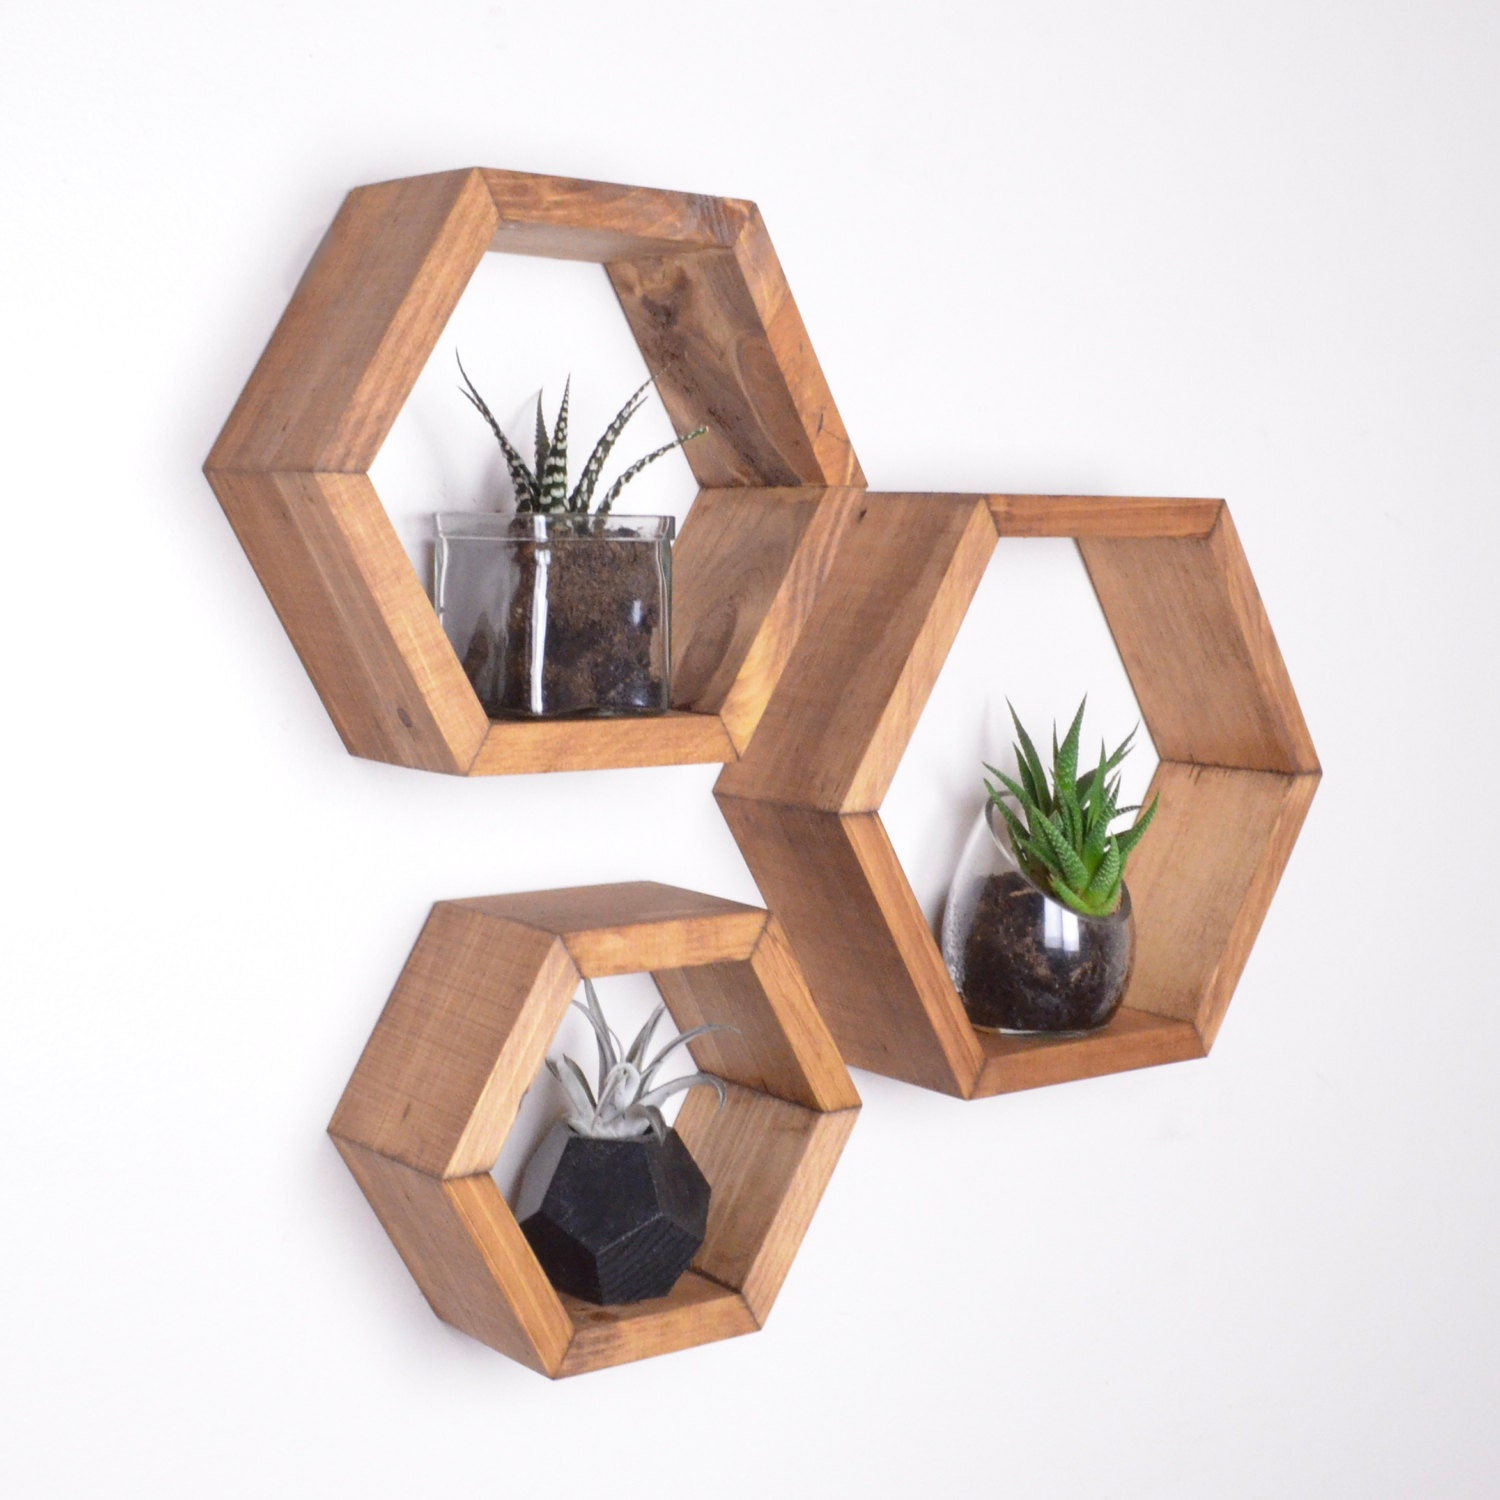 3 hexagon shelves honeycomb shelves geodesic shelves for Decoration murale hexagonale